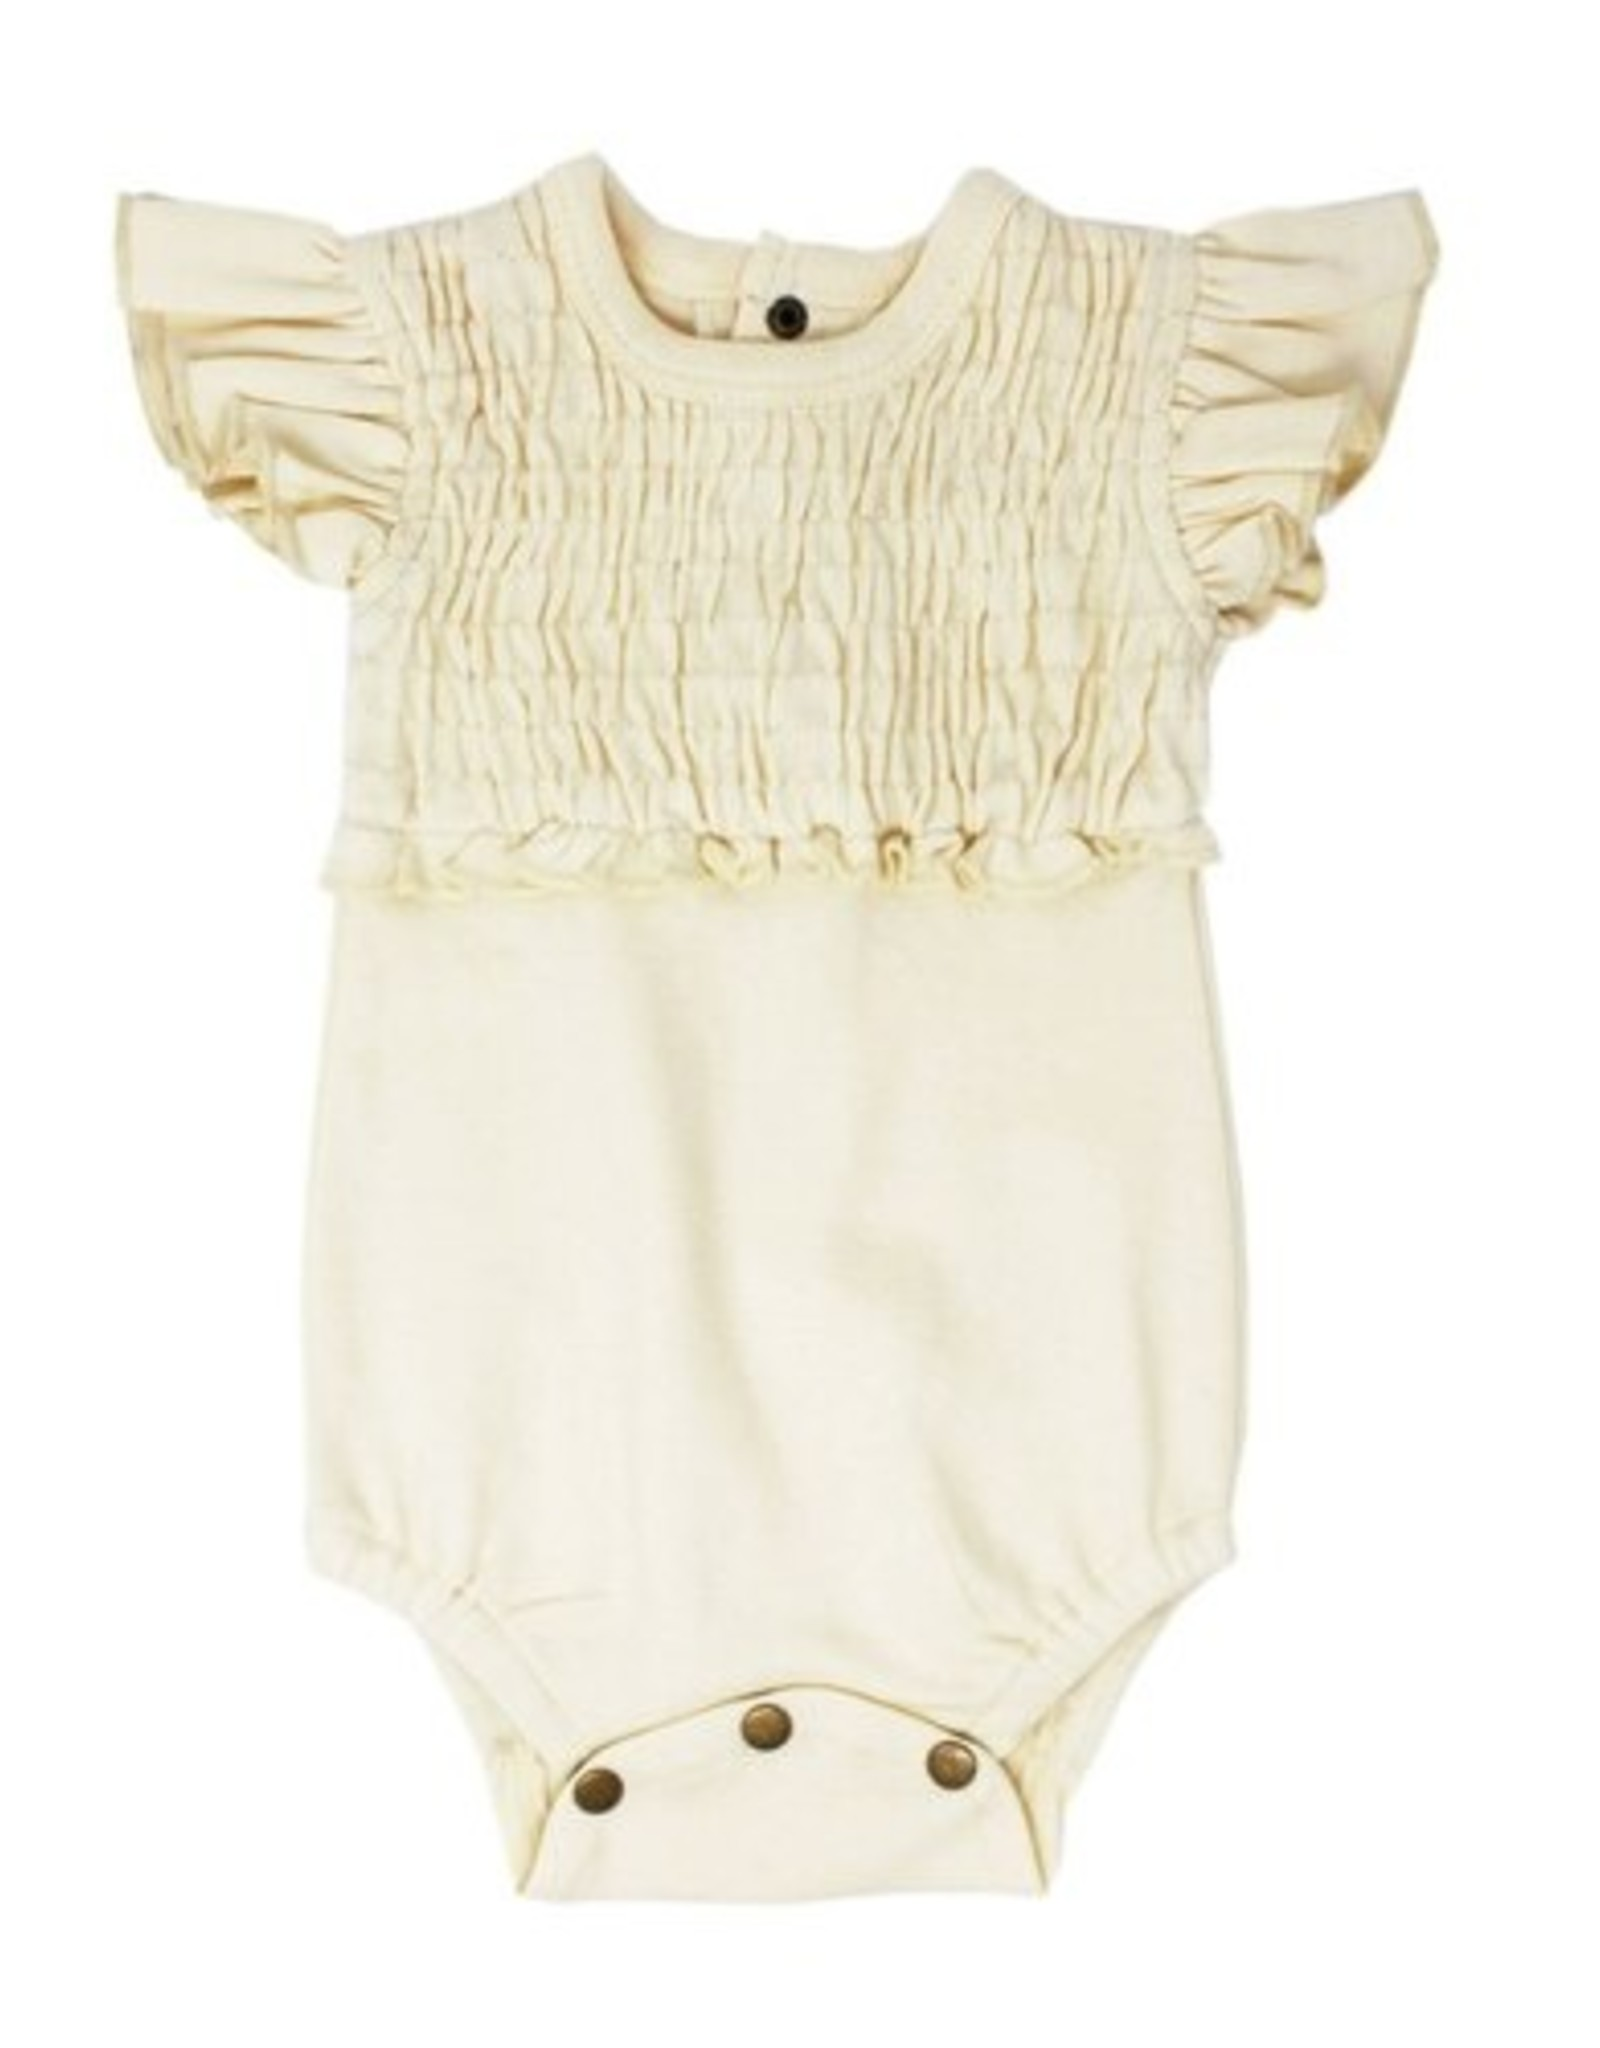 L'oved Baby Smocked Short Sleeve Body Suit Solid Beige 3-6m